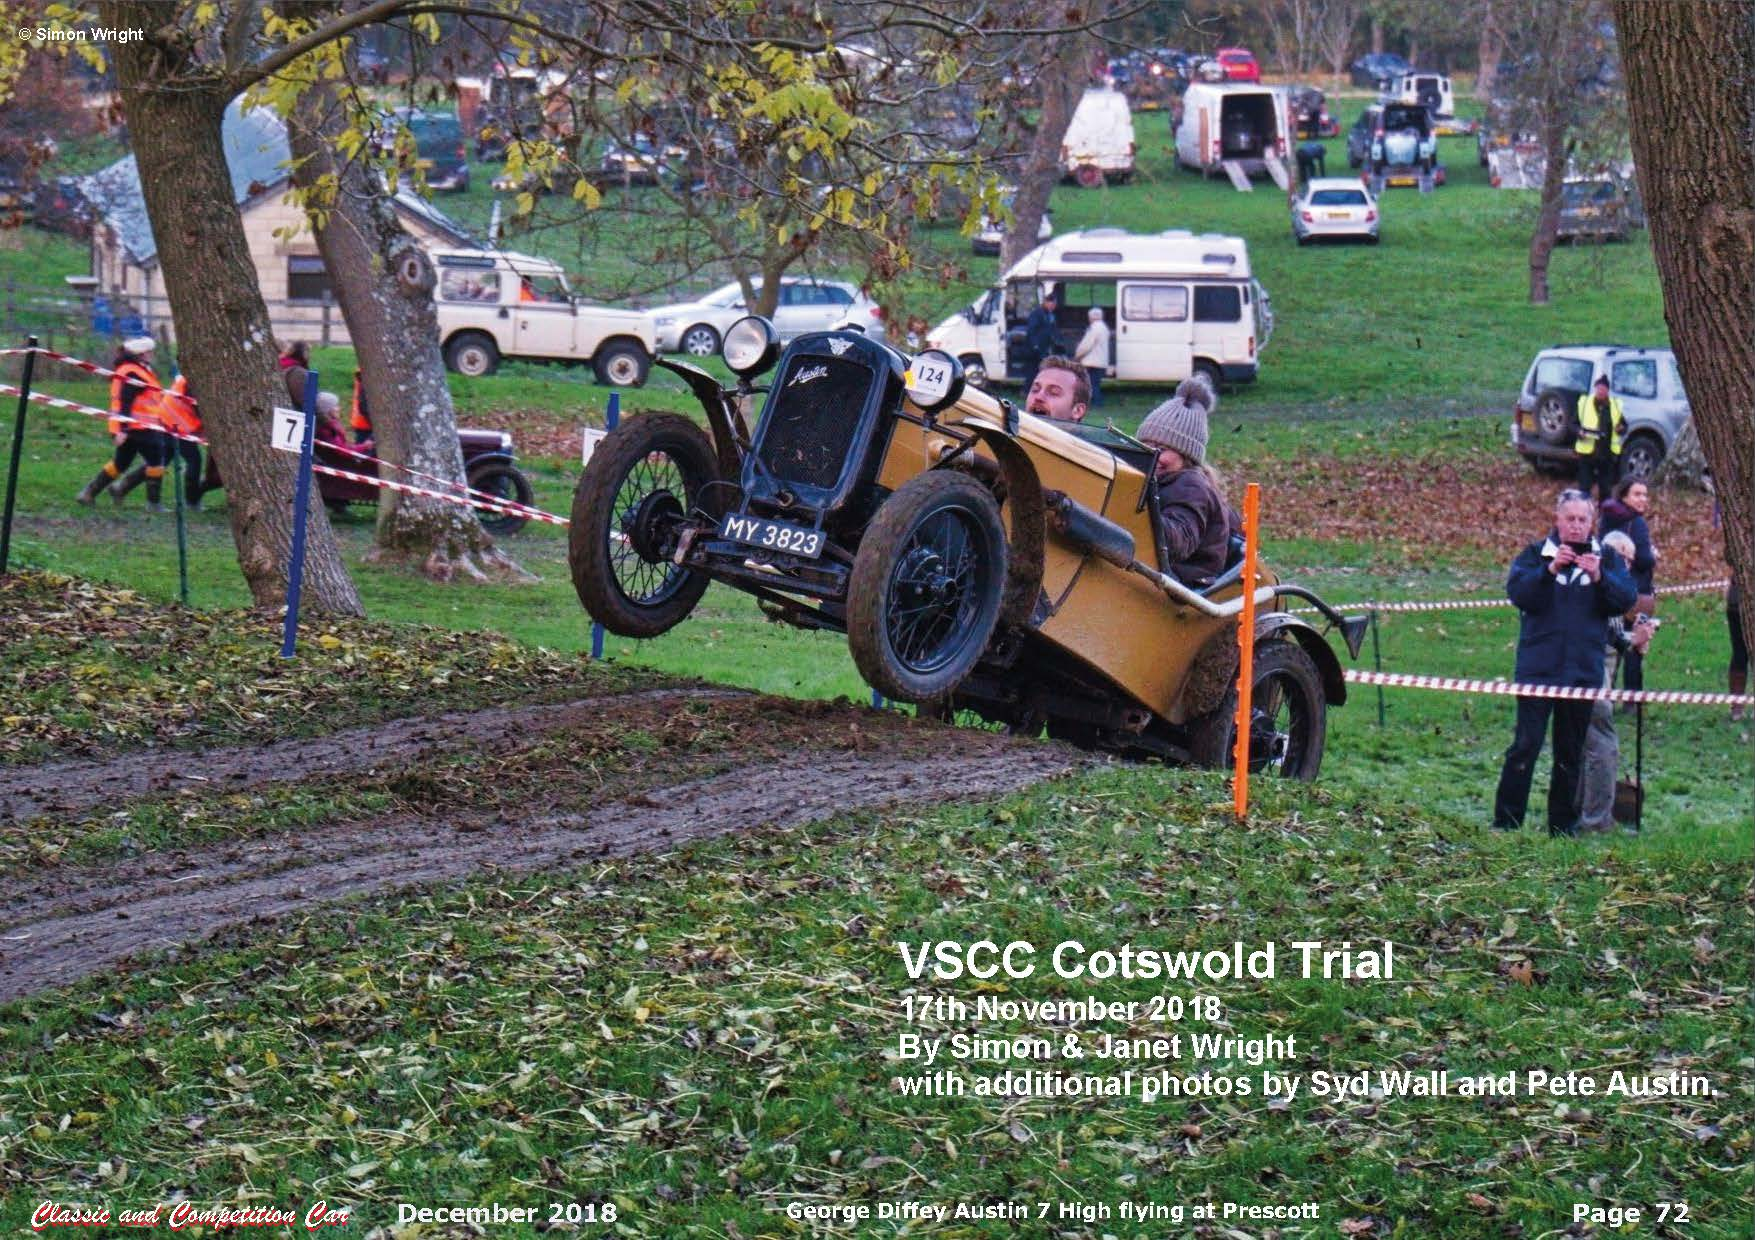 The VSCC Cotswold Trial Featured in the December issue of Classic and Competition Car  cover